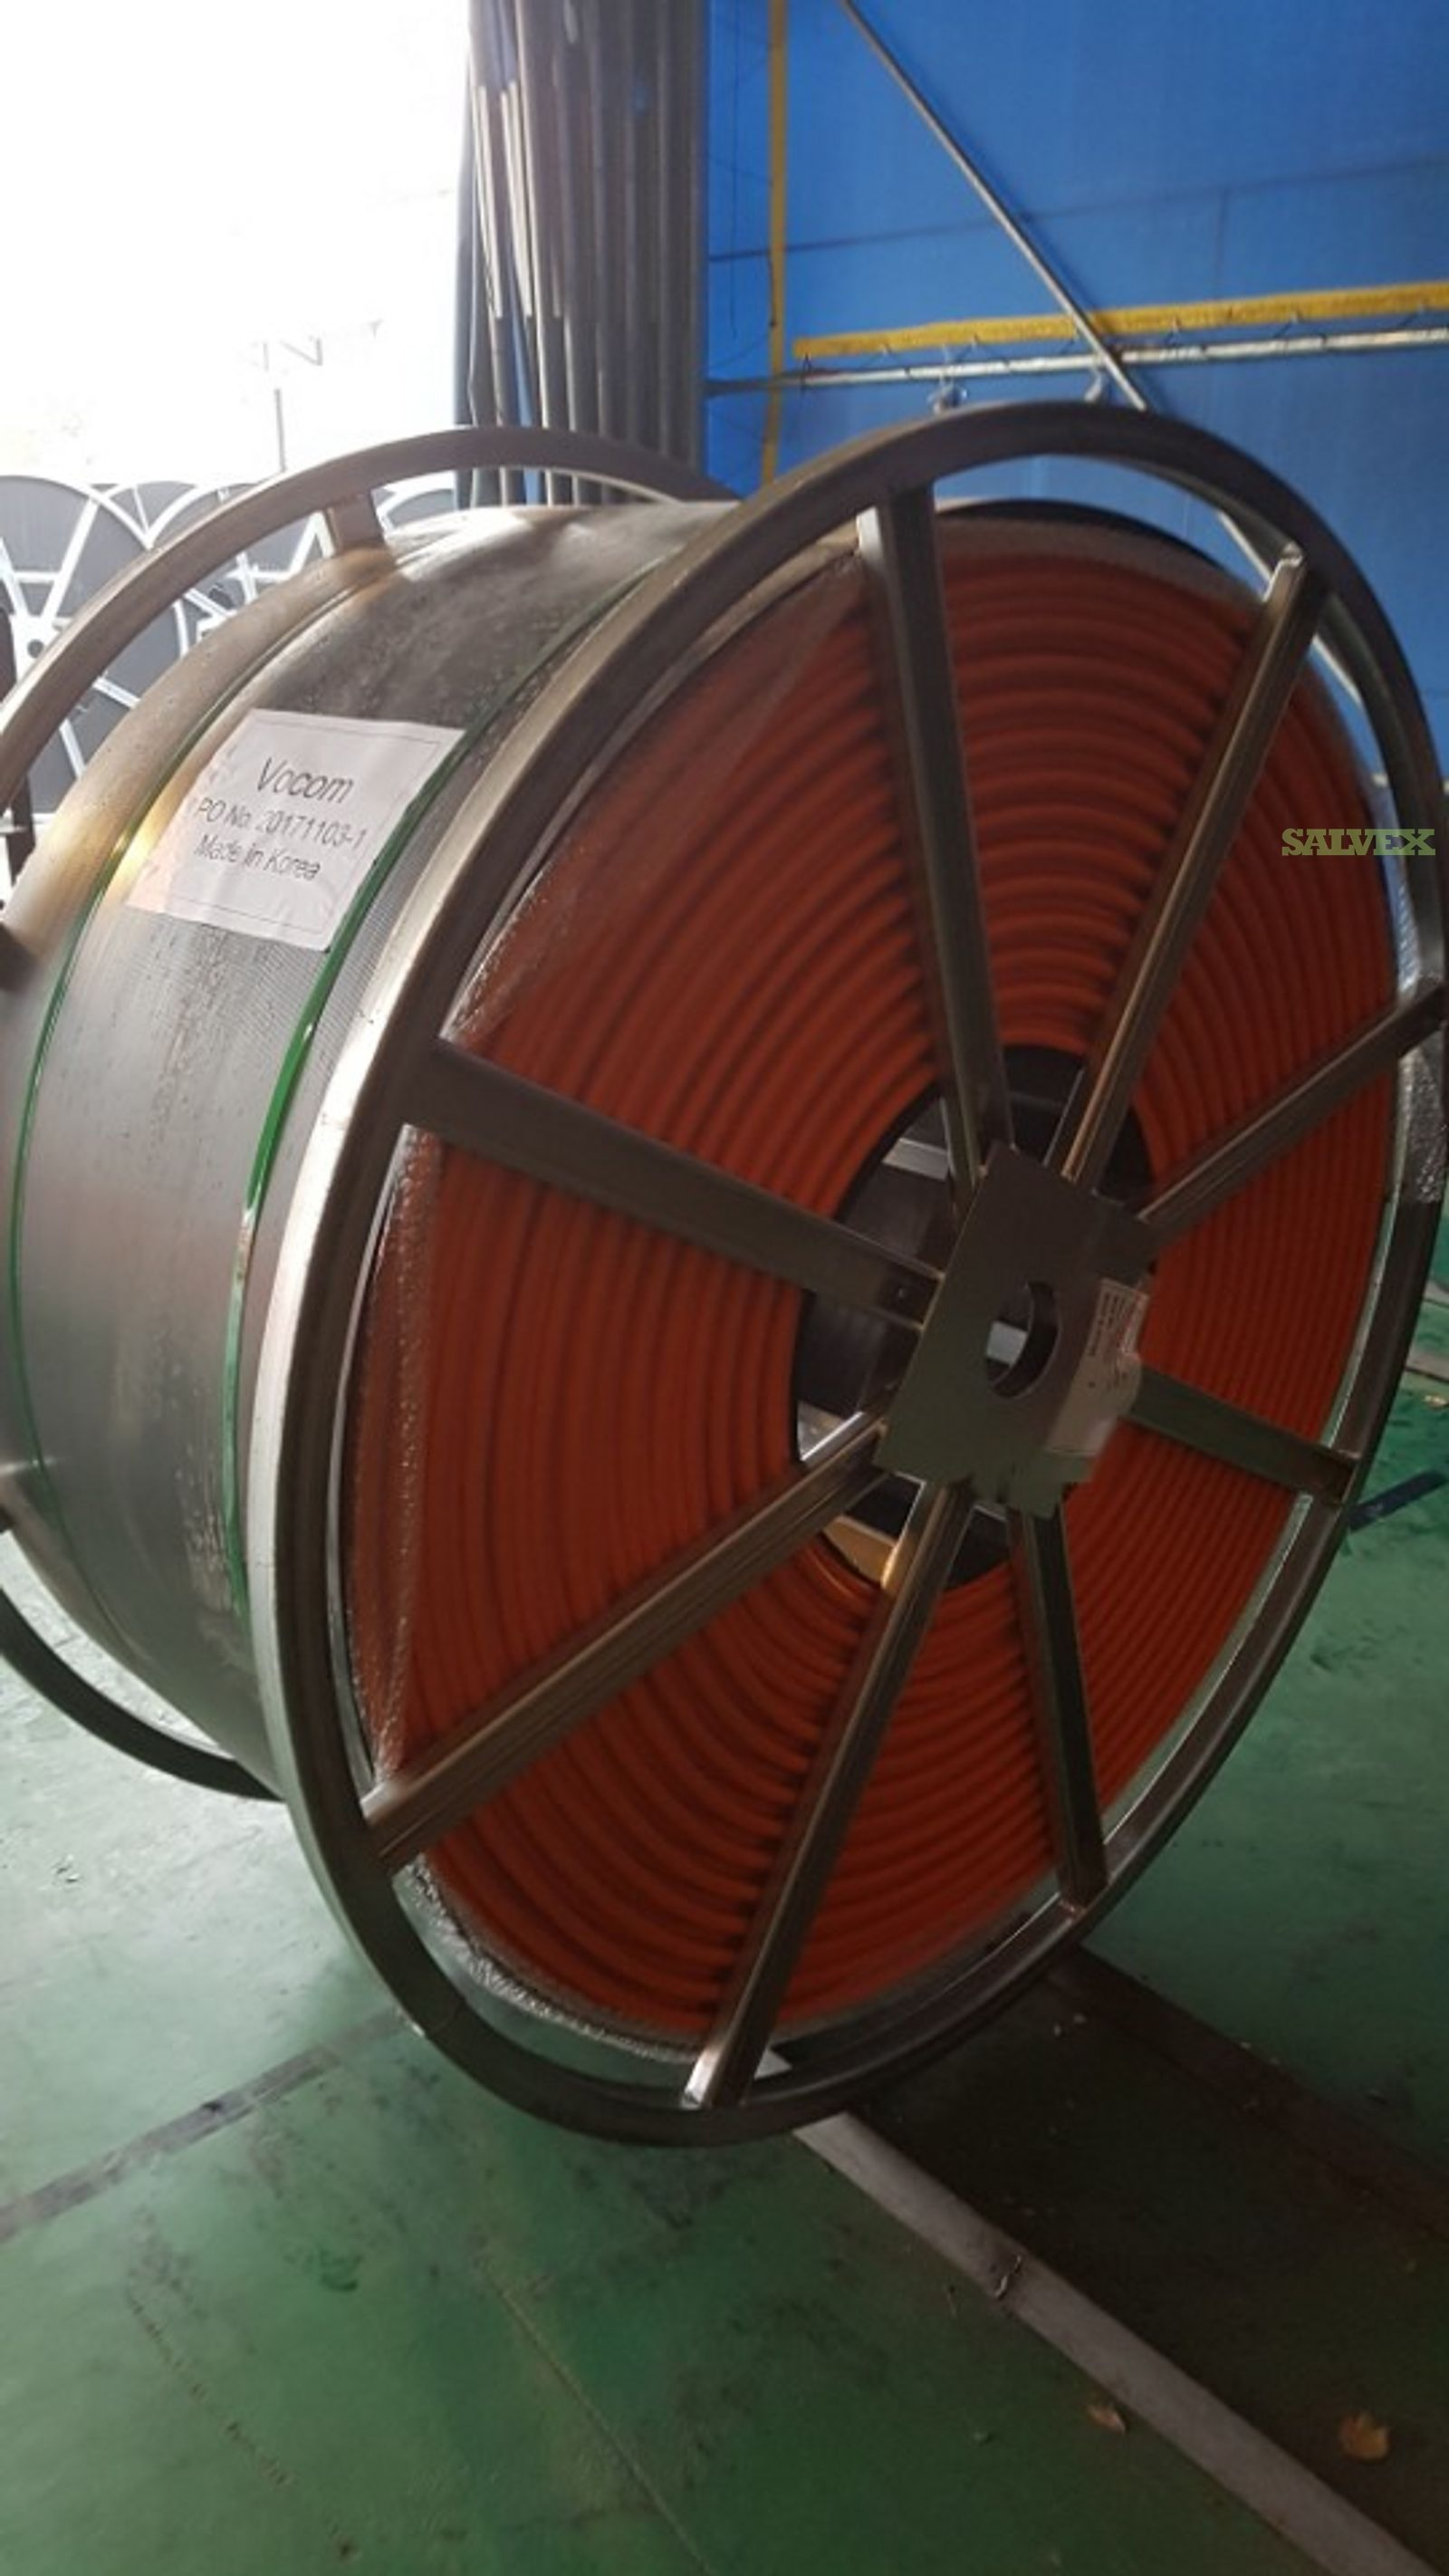 Knet Dual-Channel Cable Microduct, 12.7/10mm - for Air-Blown Fiber Optic Cable Installation (10 Reels / 55,000 FT)